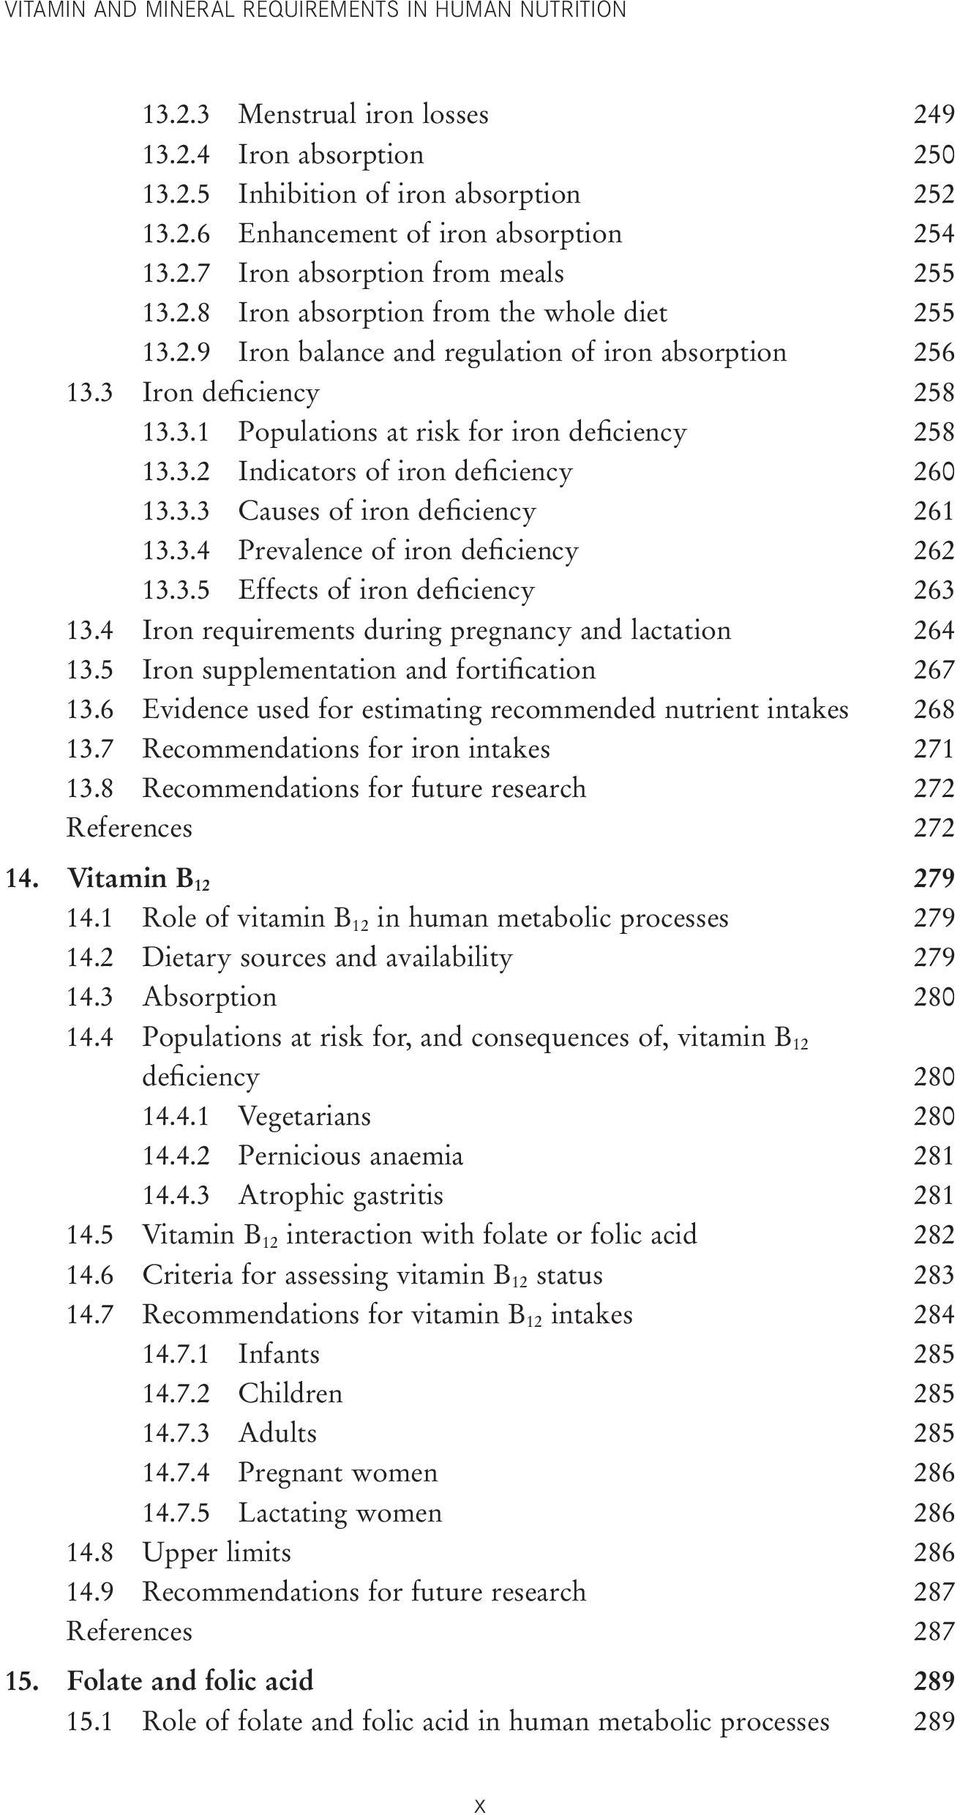 3.3 Causes of iron deficiency 261 13.3.4 Prevalence of iron deficiency 262 13.3.5 Effects of iron deficiency 263 13.4 Iron requirements during pregnancy and lactation 264 13.